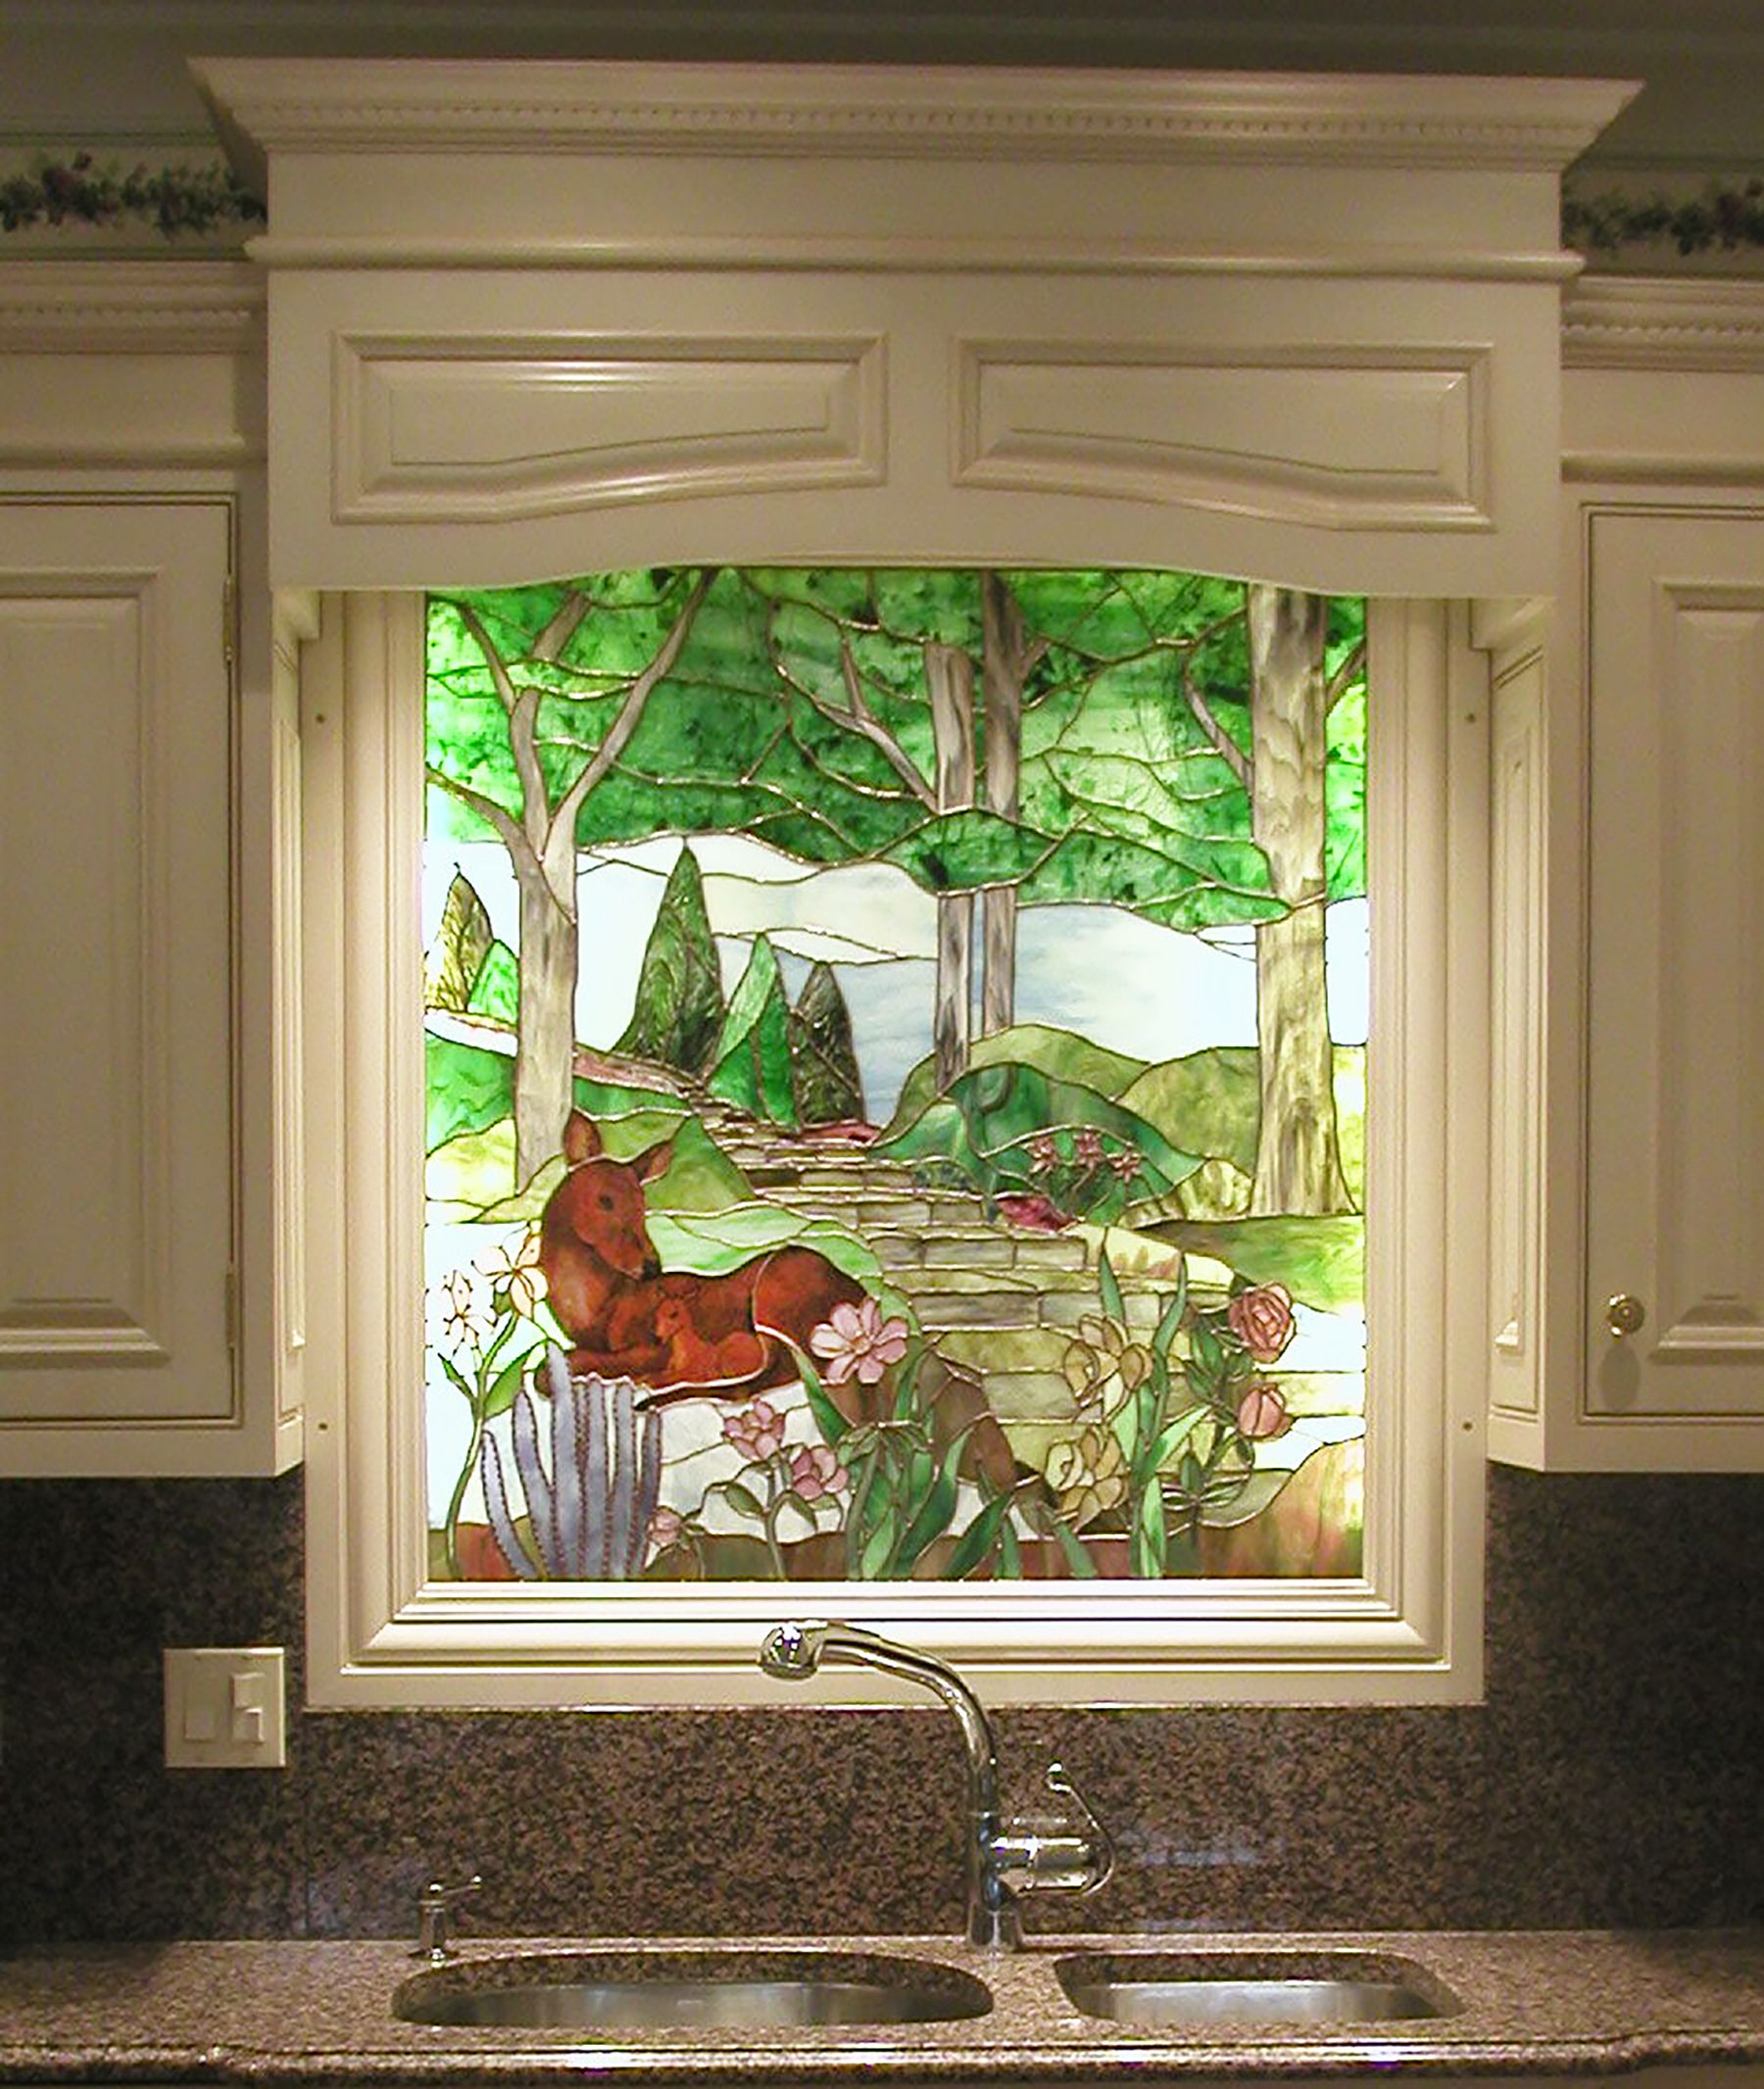 Backsplash Behind Sink Custom Scenic Stained Glass Backsplash Behind Sink Backsplashes